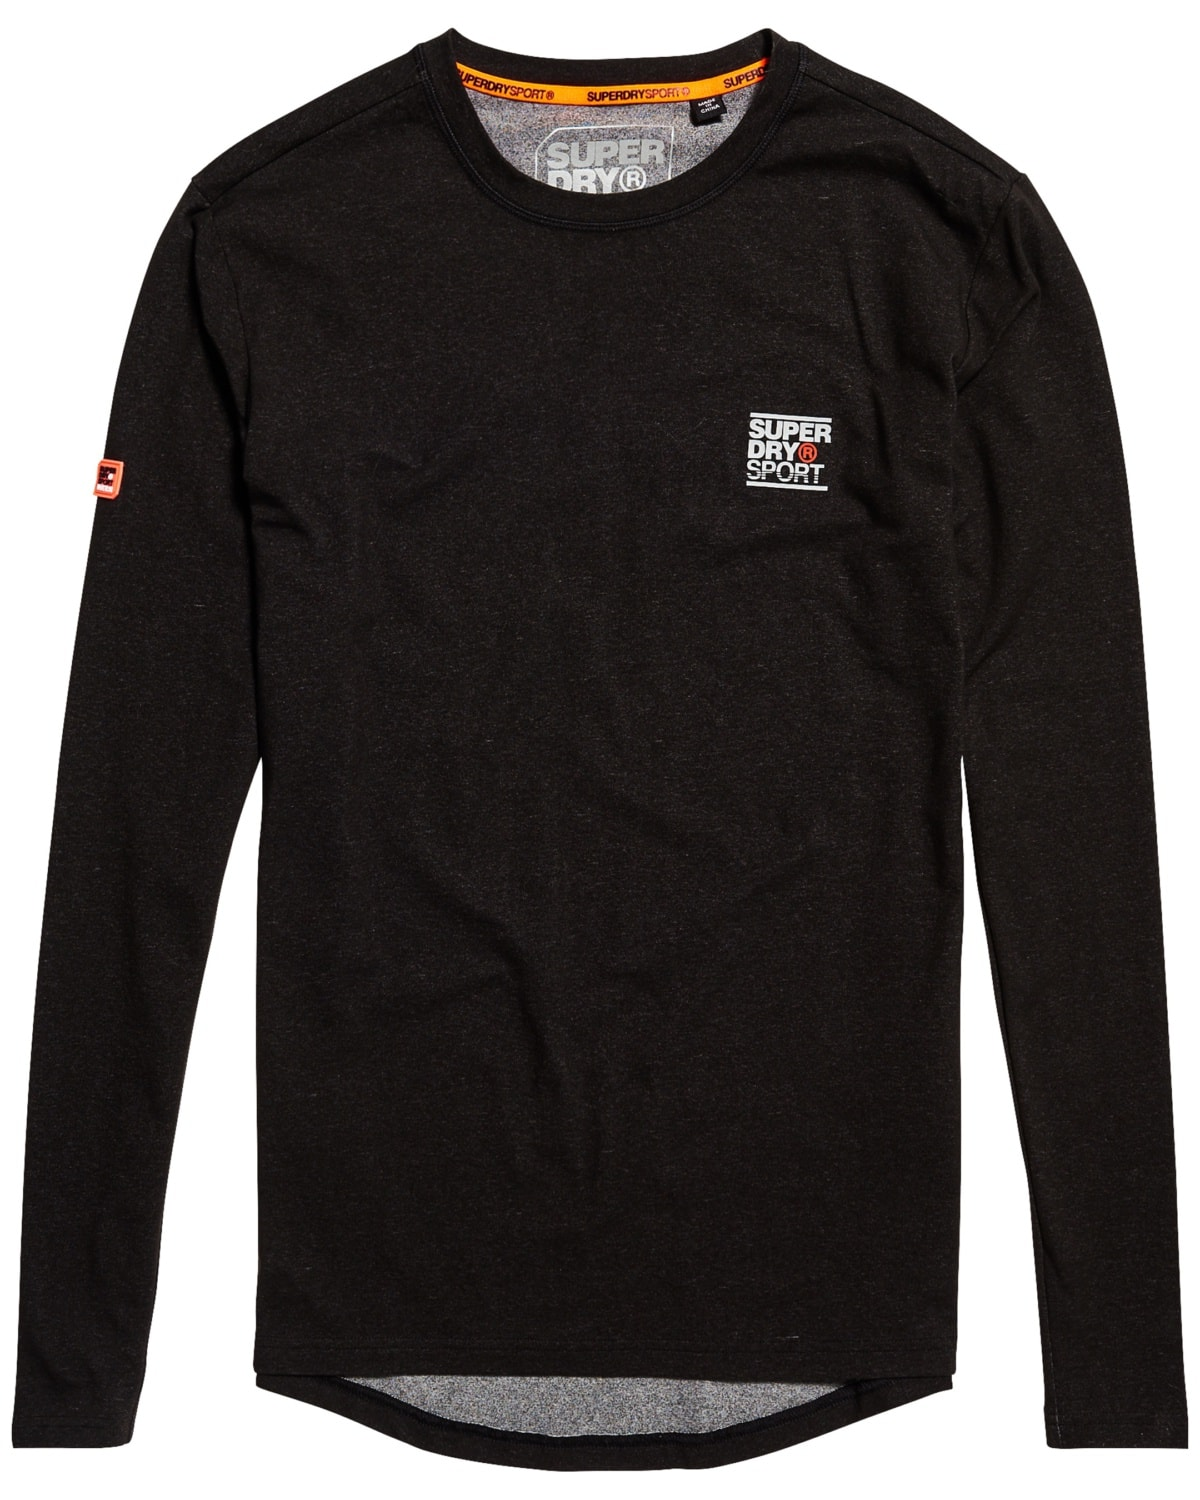 Superdry-Core-Long-Sleeve-ms3002rr_02a